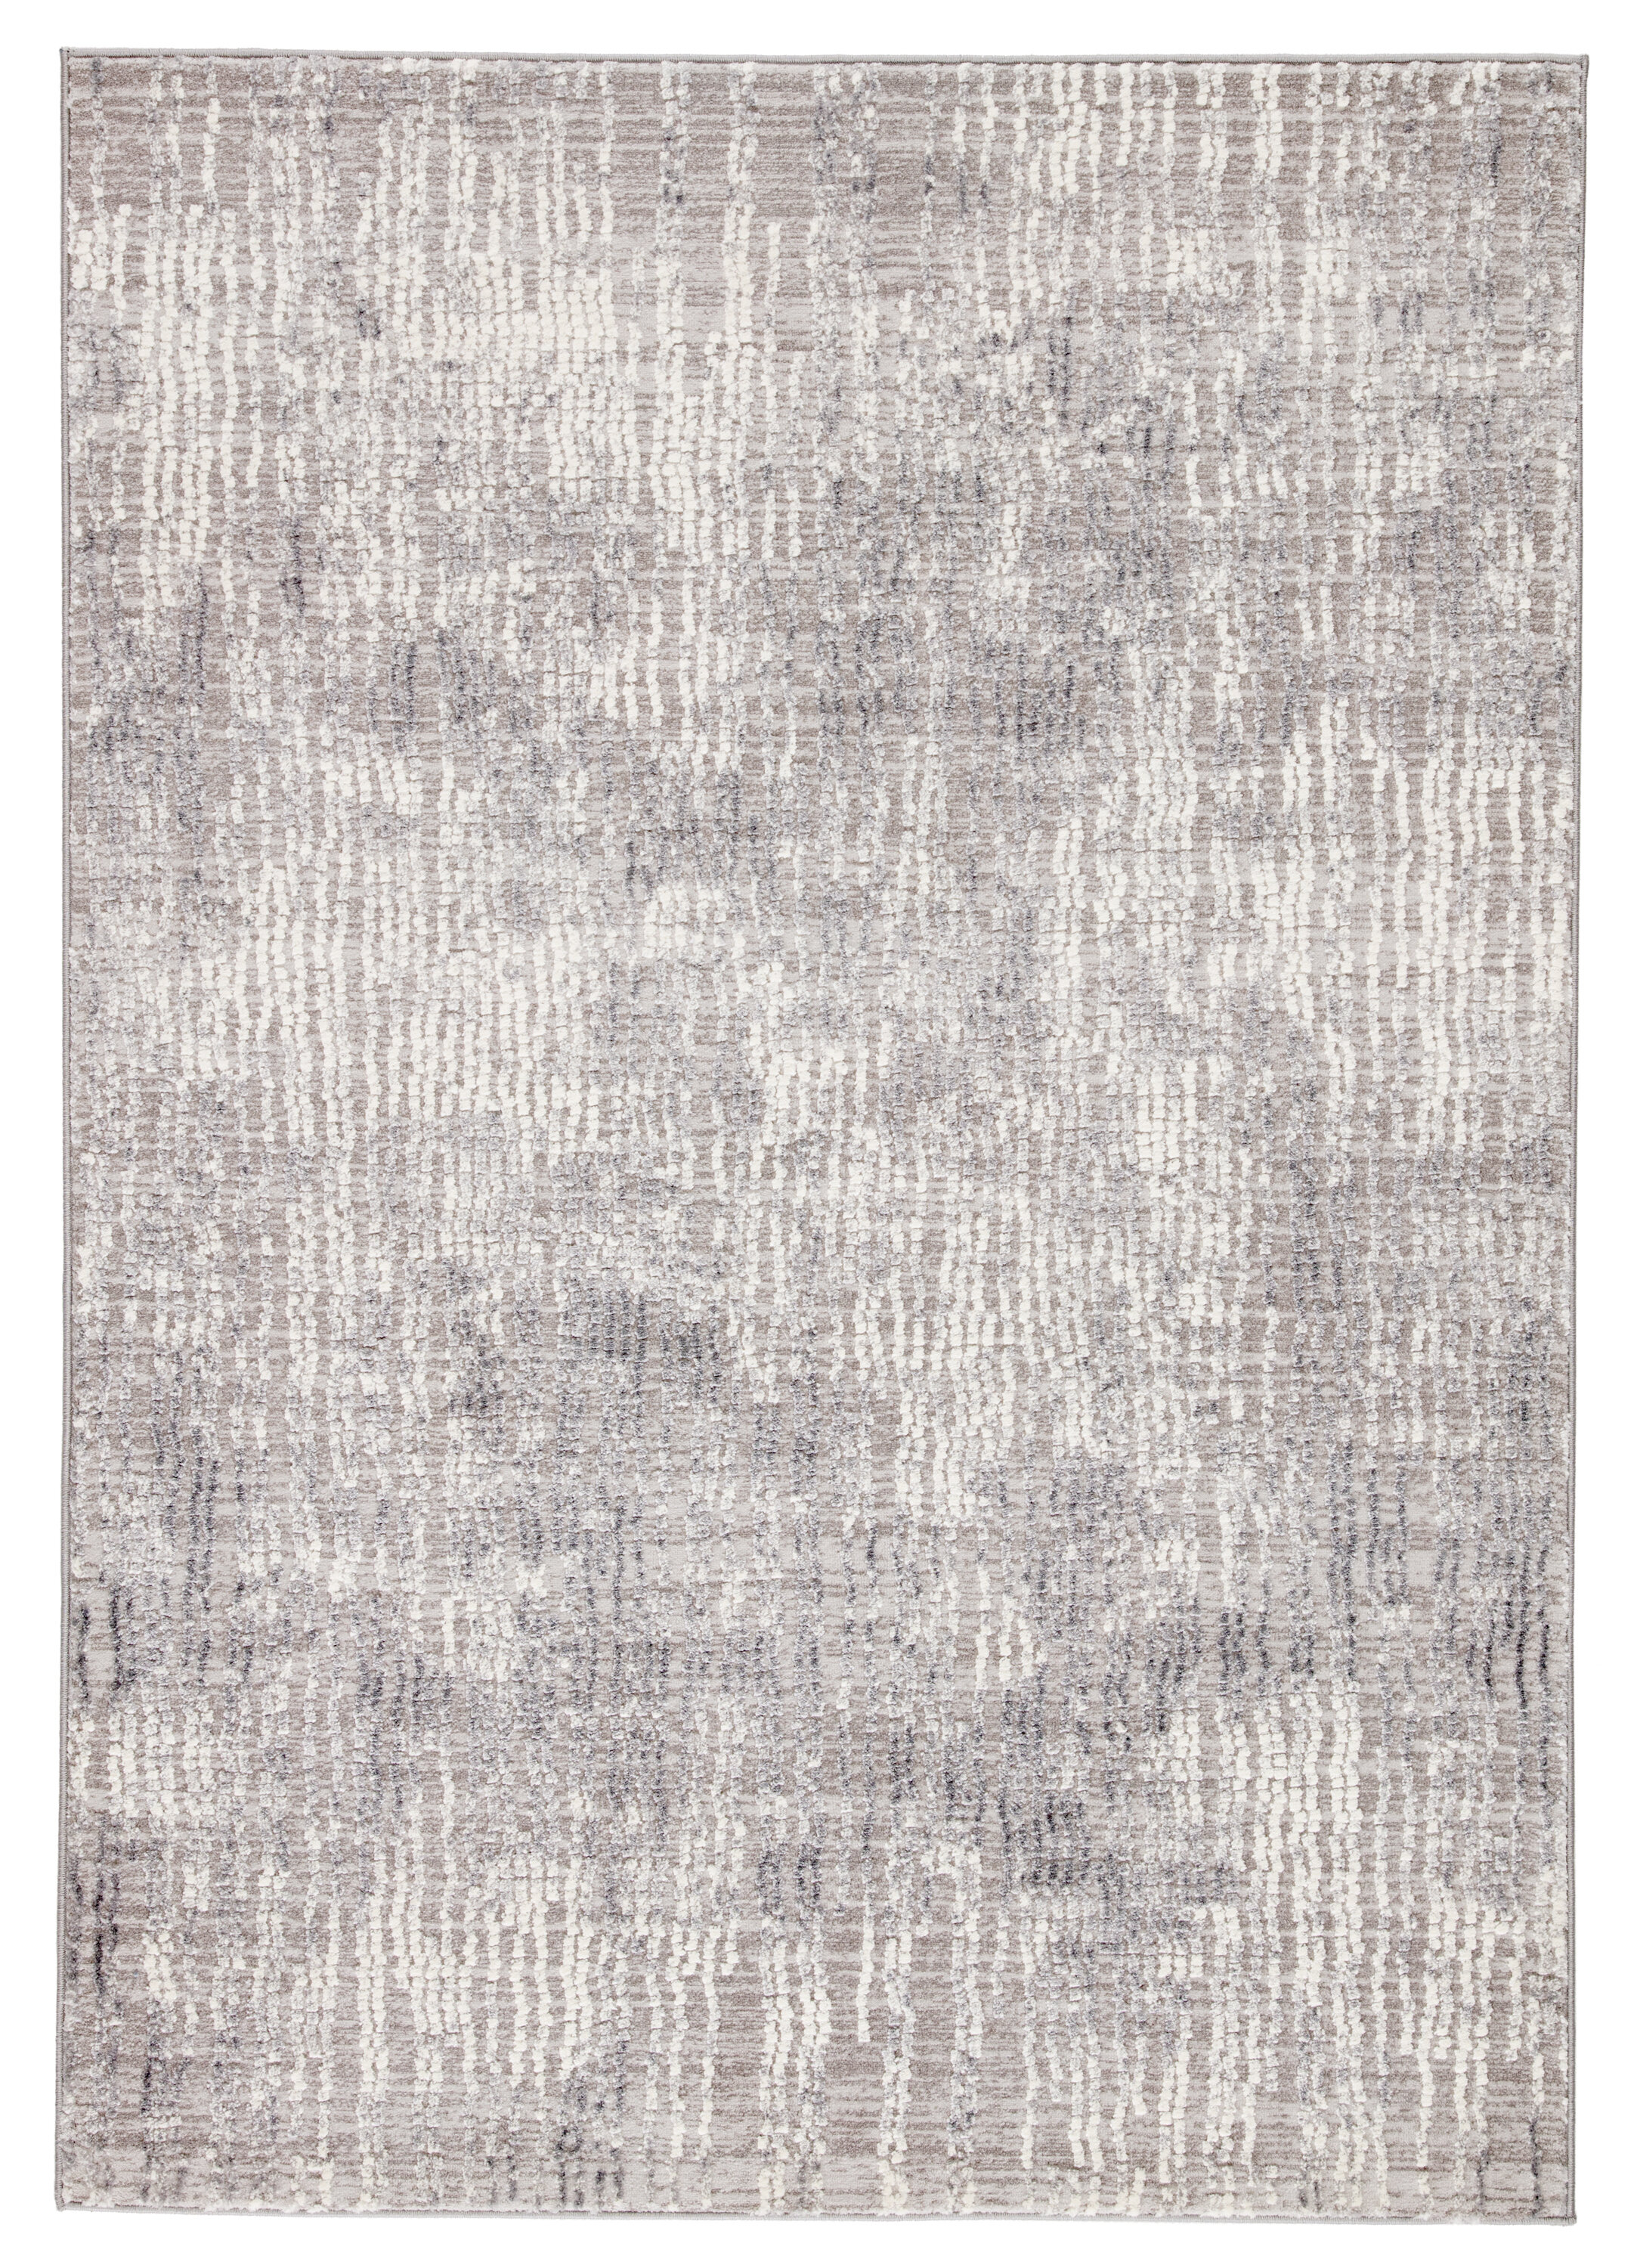 Almus Abstract Light Graywhite Area Rug Joss Main